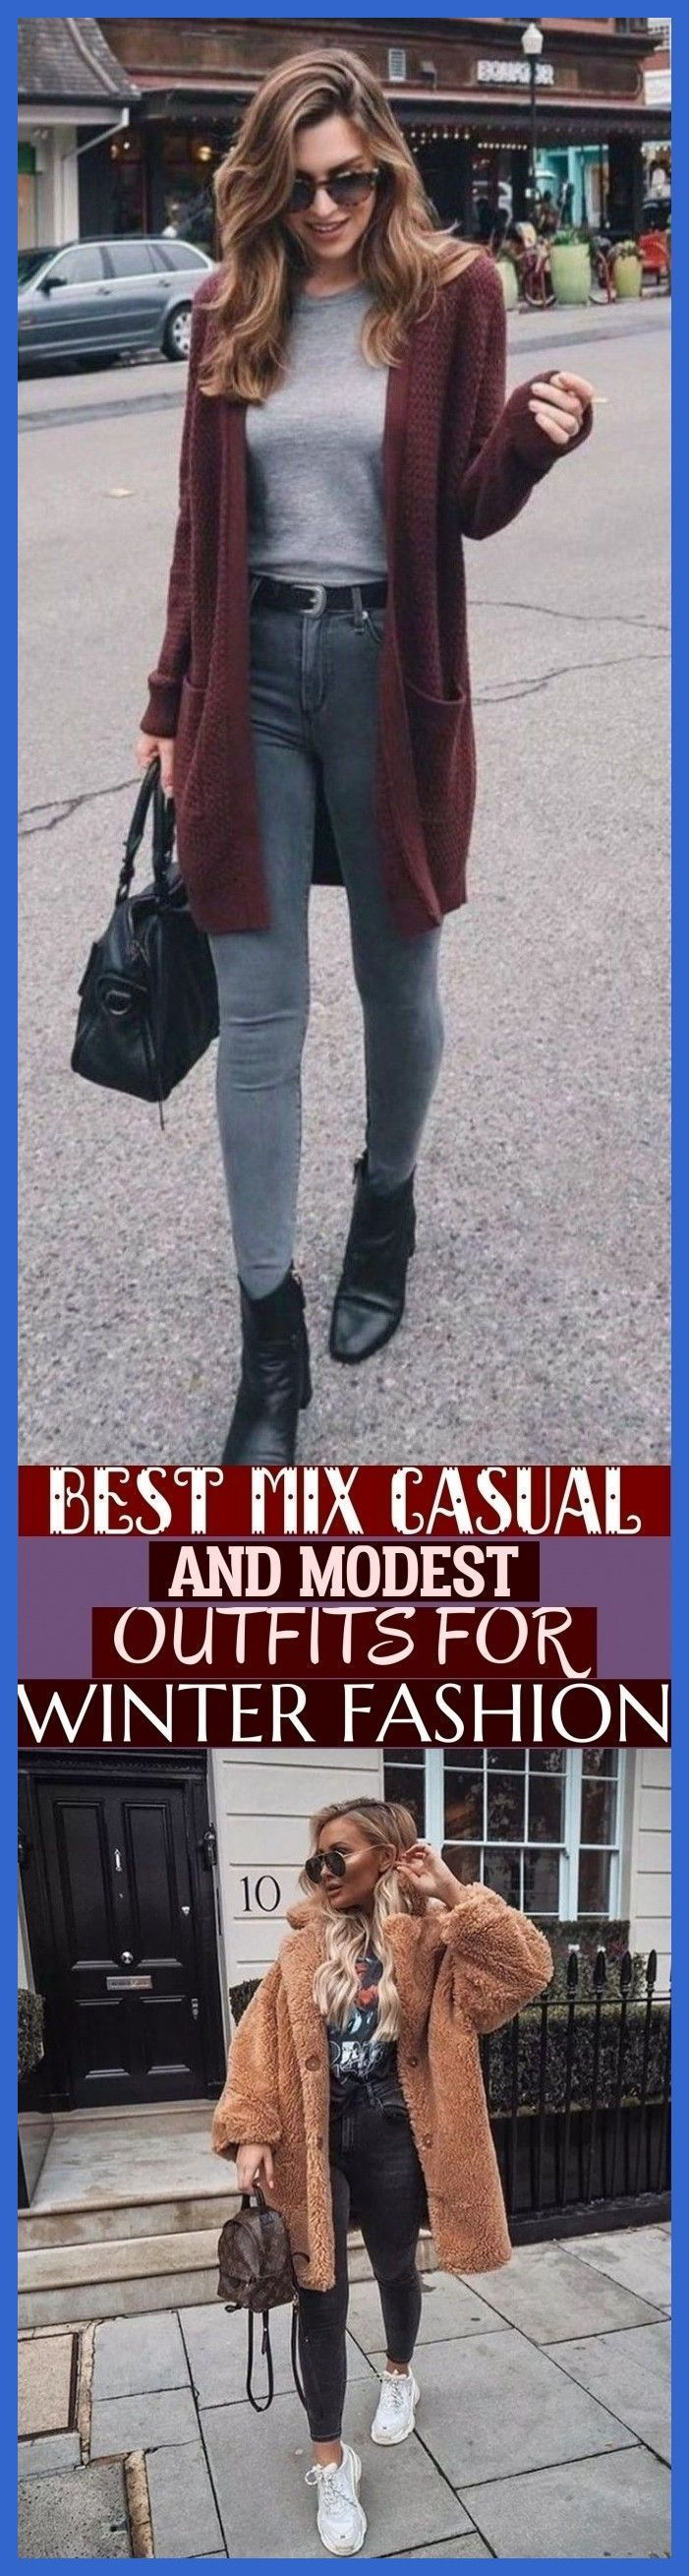 Primavera casual outfits  With Tennis Shoes casual outfits  With Flats casual